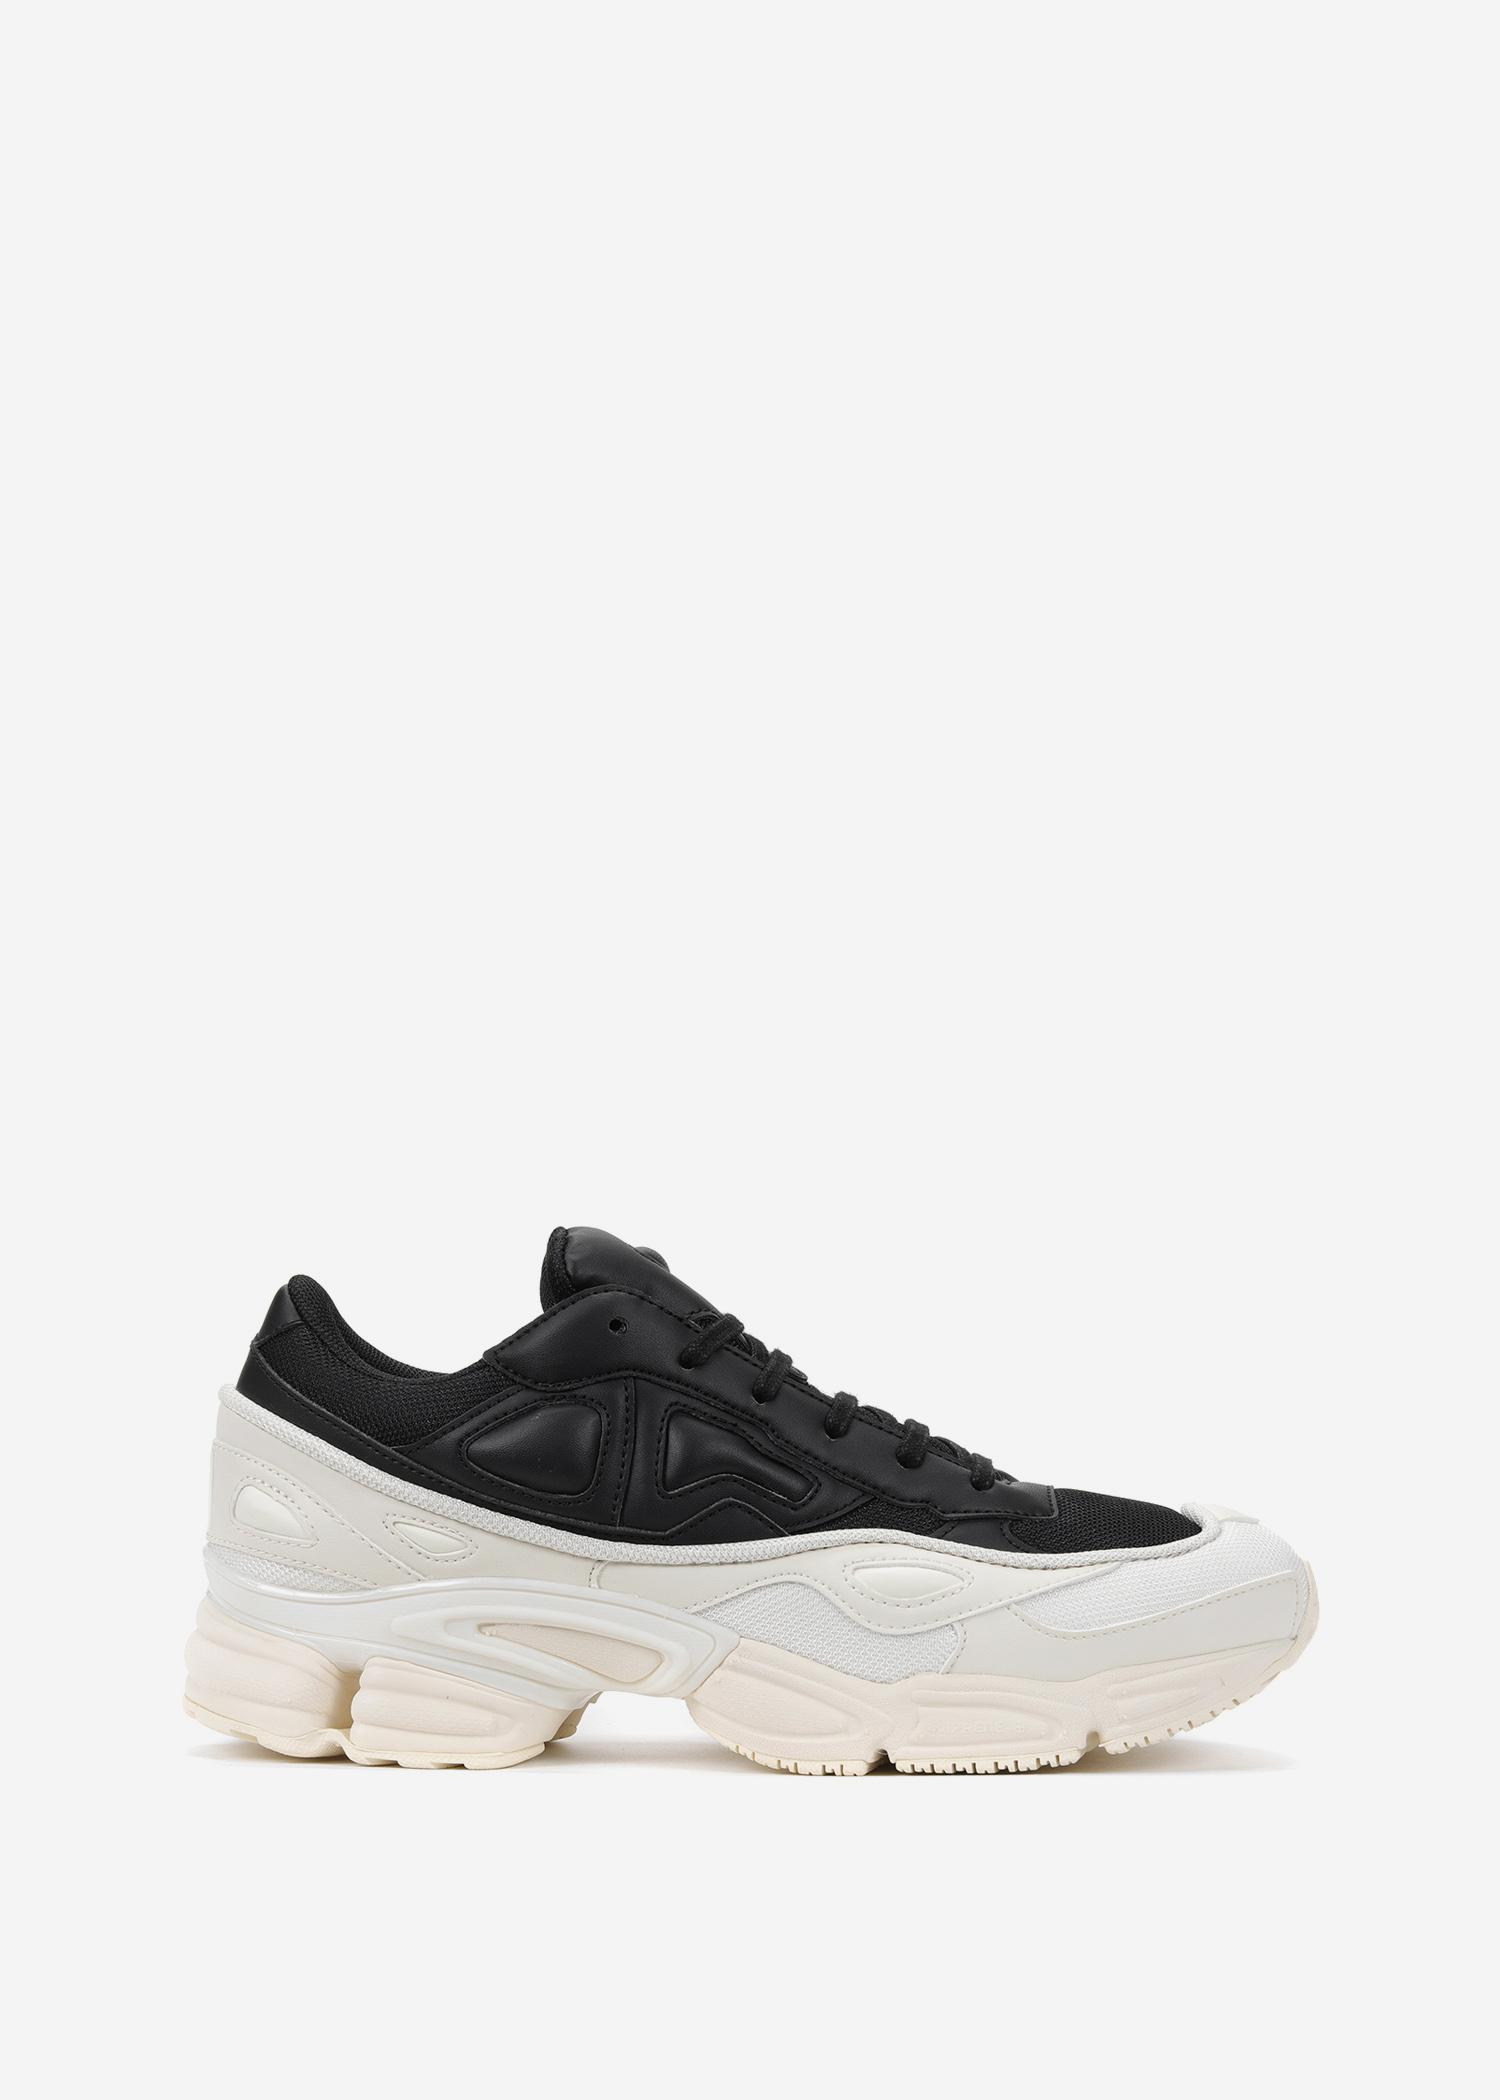 best sneakers bf2bf 883a7 Raf Simons Adidas By Ozweego In Cream White Core Black Core Black